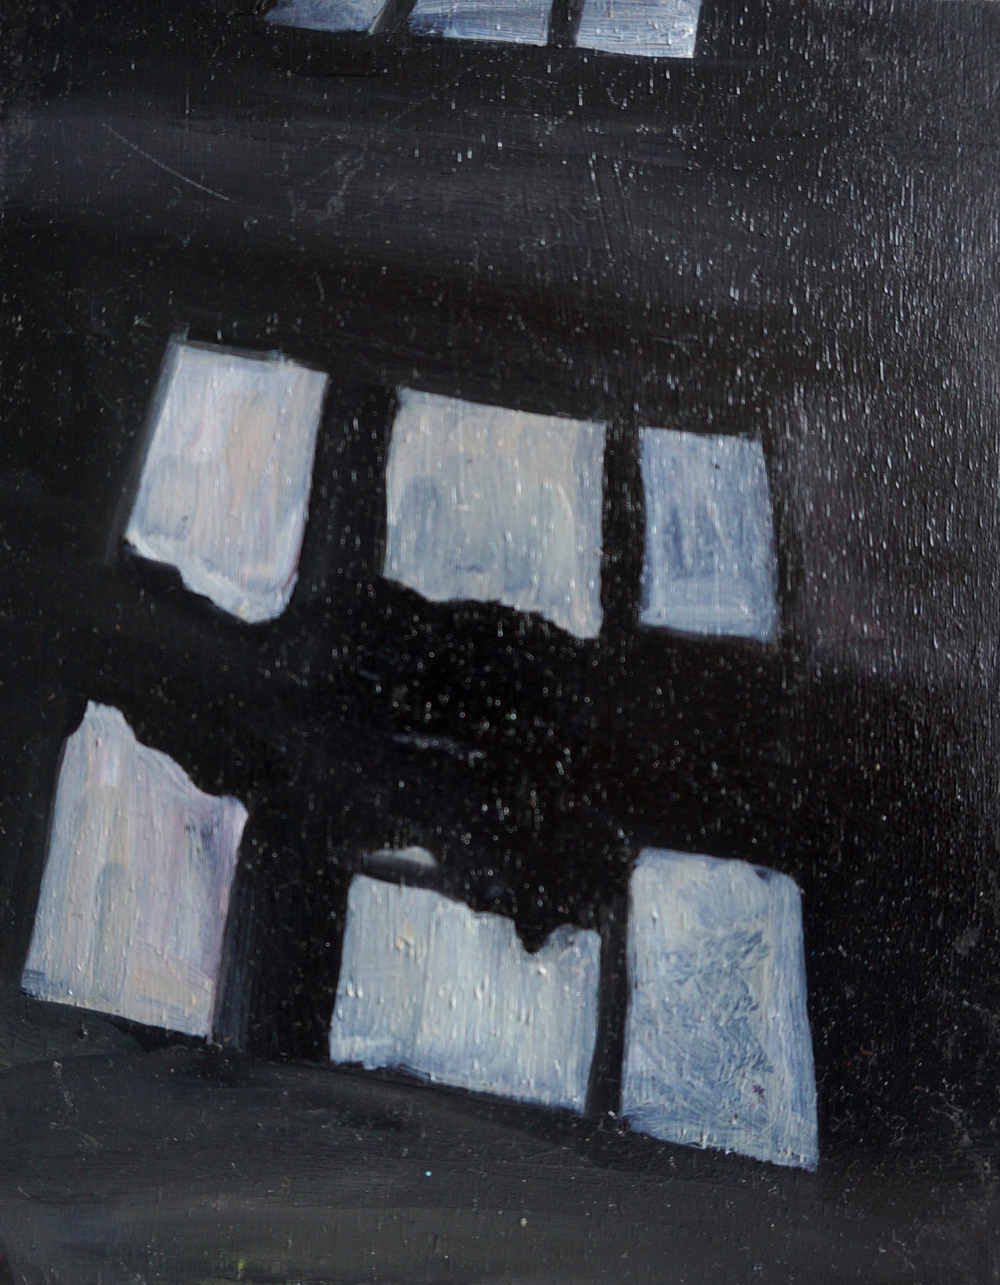 15 x 12 cm, pastels and oil paint on wood, 2014, Poland series